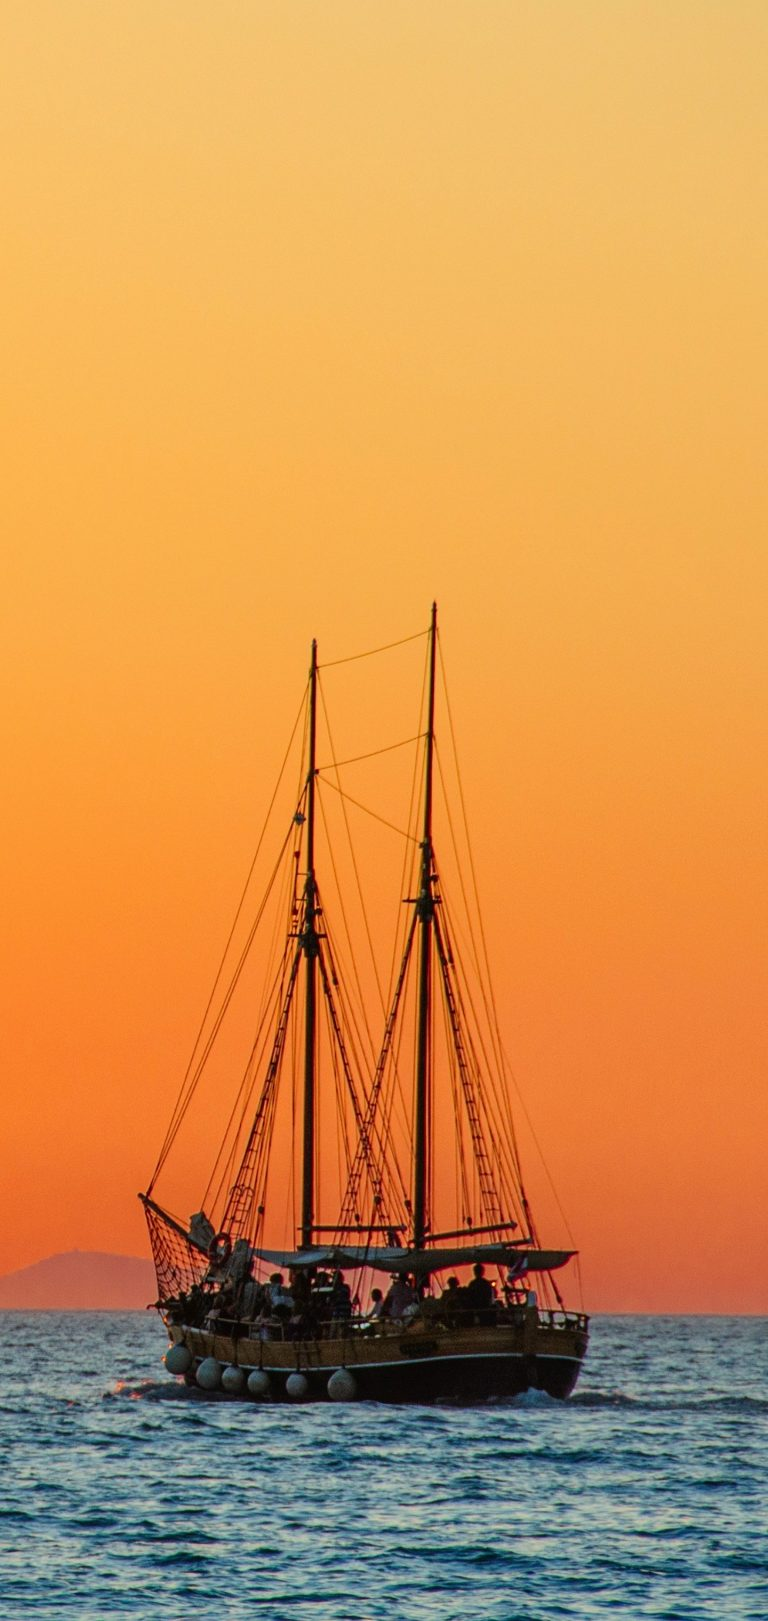 Sea Sailboat Horizon Wallpaper 1440x3040 768x1621